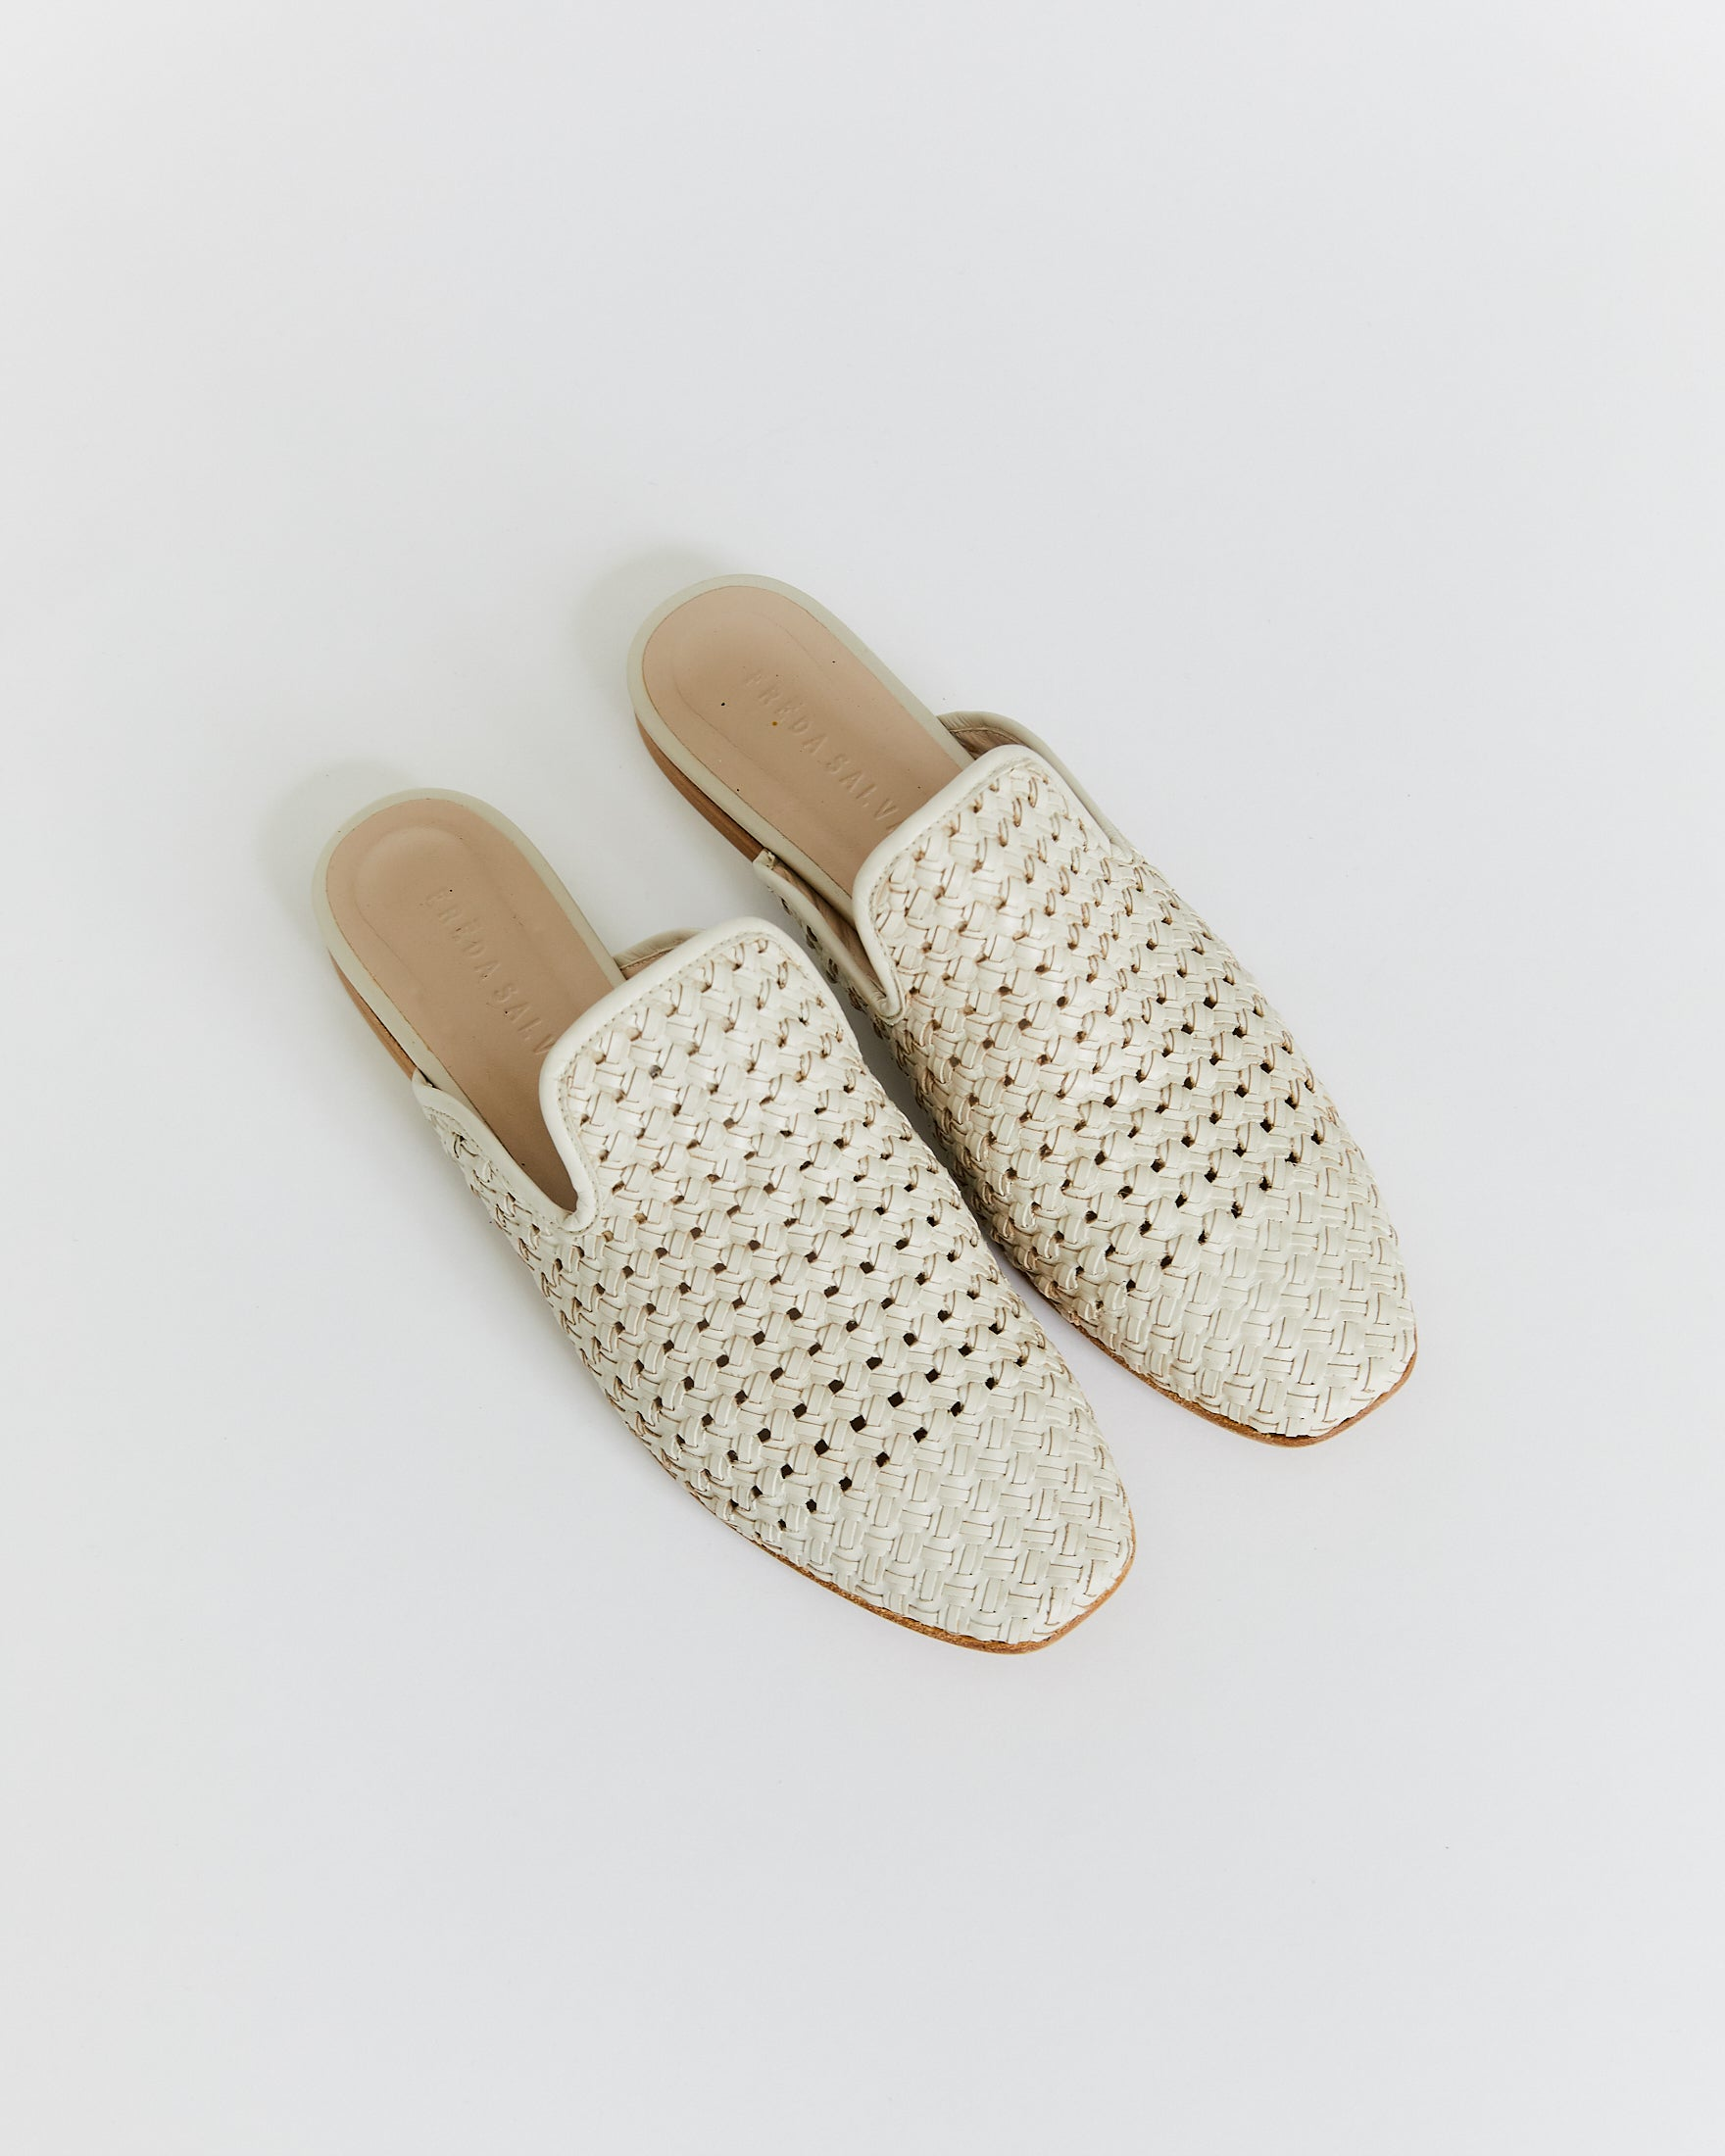 FREDA SALVADOR - MURPHEY SLIP ON - SMOKE WOVEN